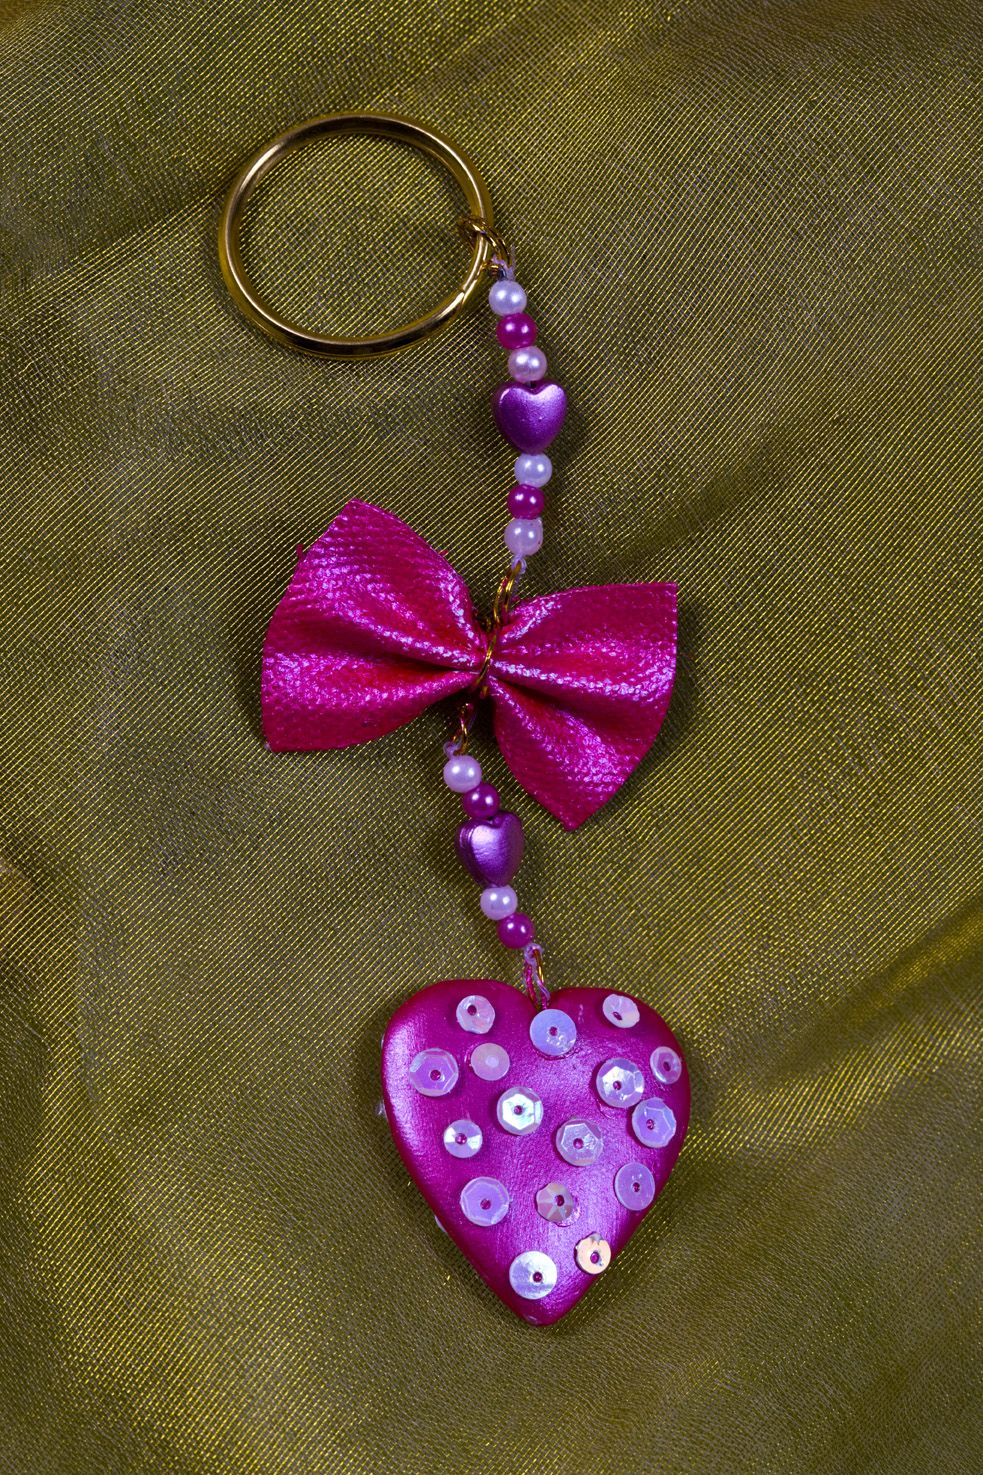 On The Special Occasion Of Valentines Day Indulge In DIY Gift Making Using